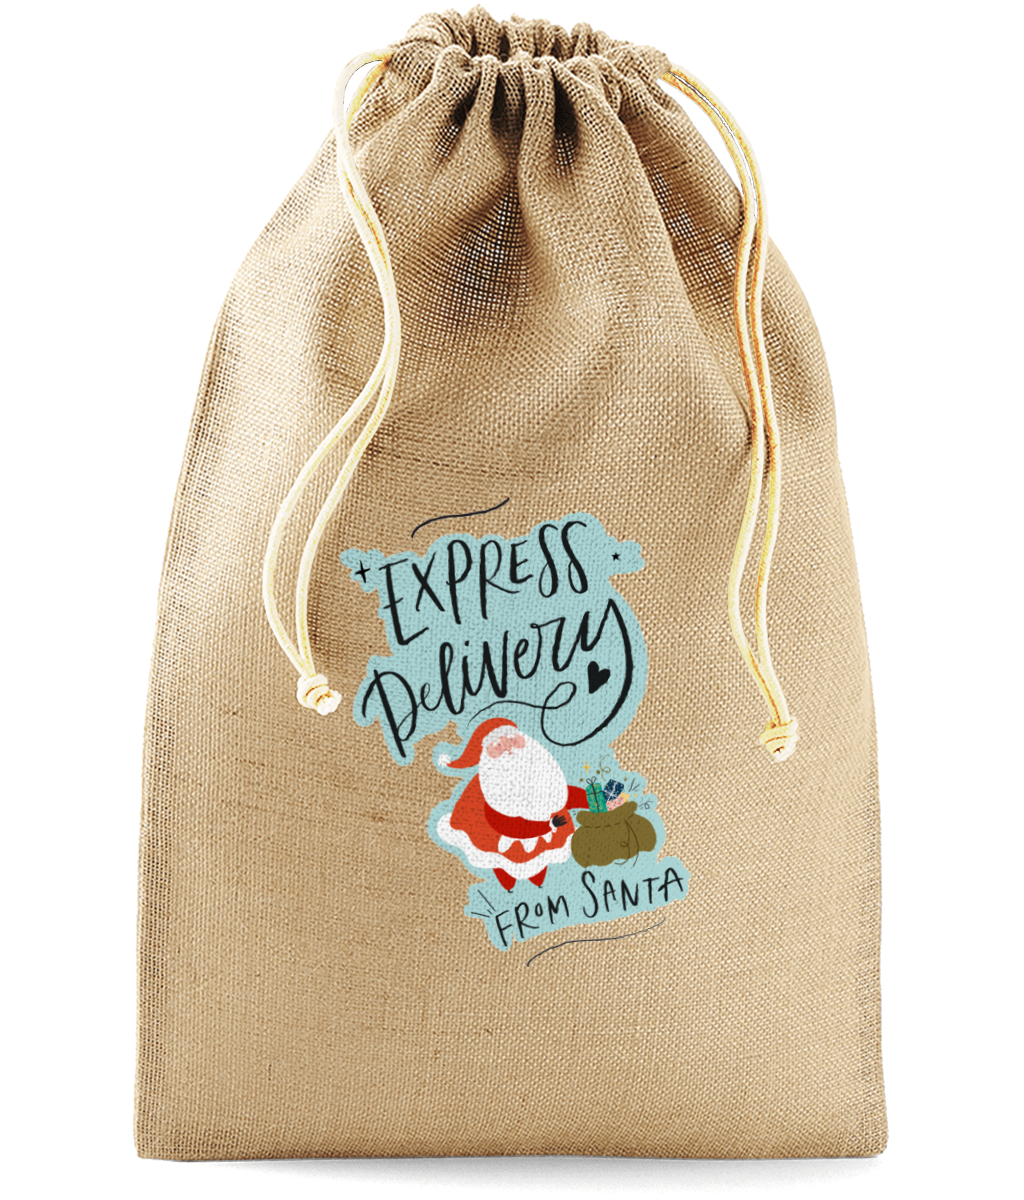 Santa Express Delivery Sack - House Of Wonderland, HOW